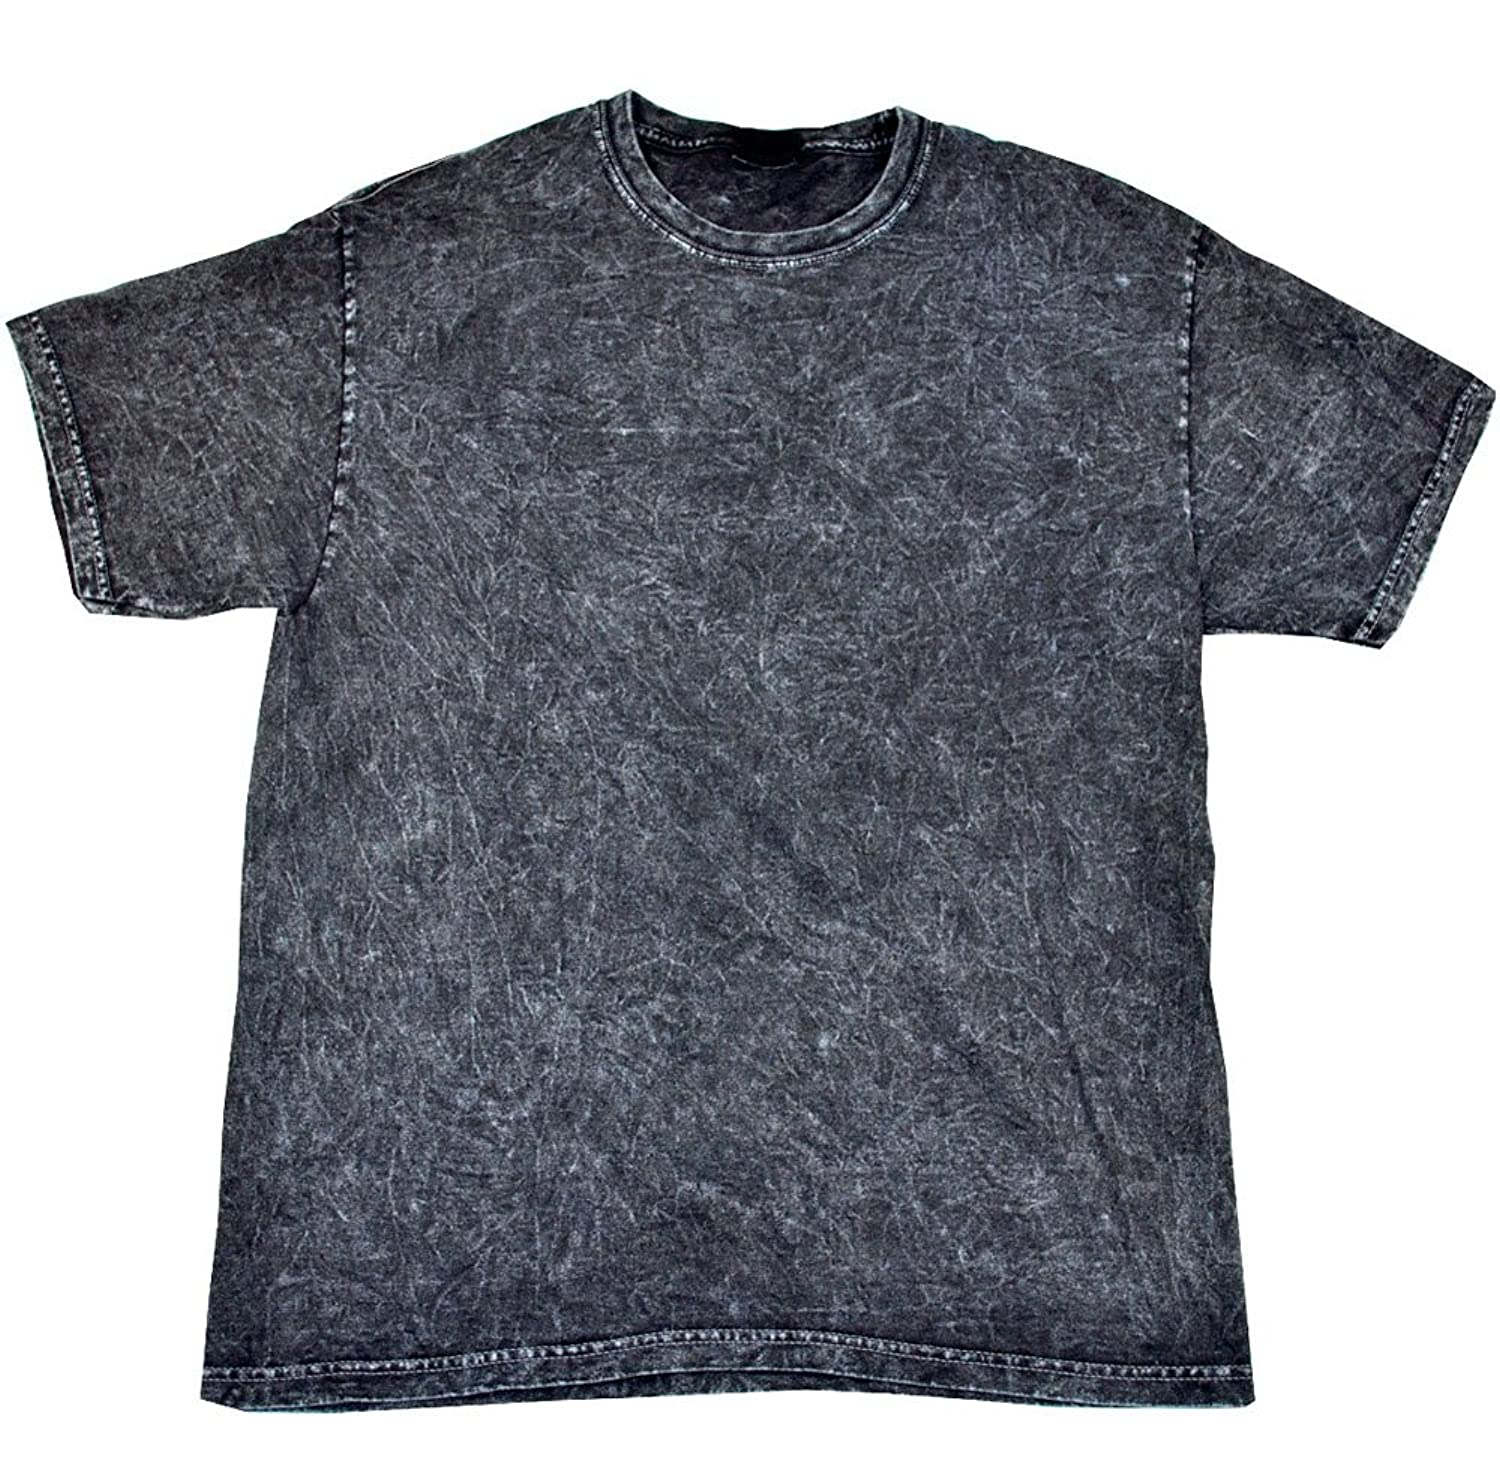 Vintage Mineral Wash Black T-Shirt Adult S - 3XL Short Sleeve 100 ...